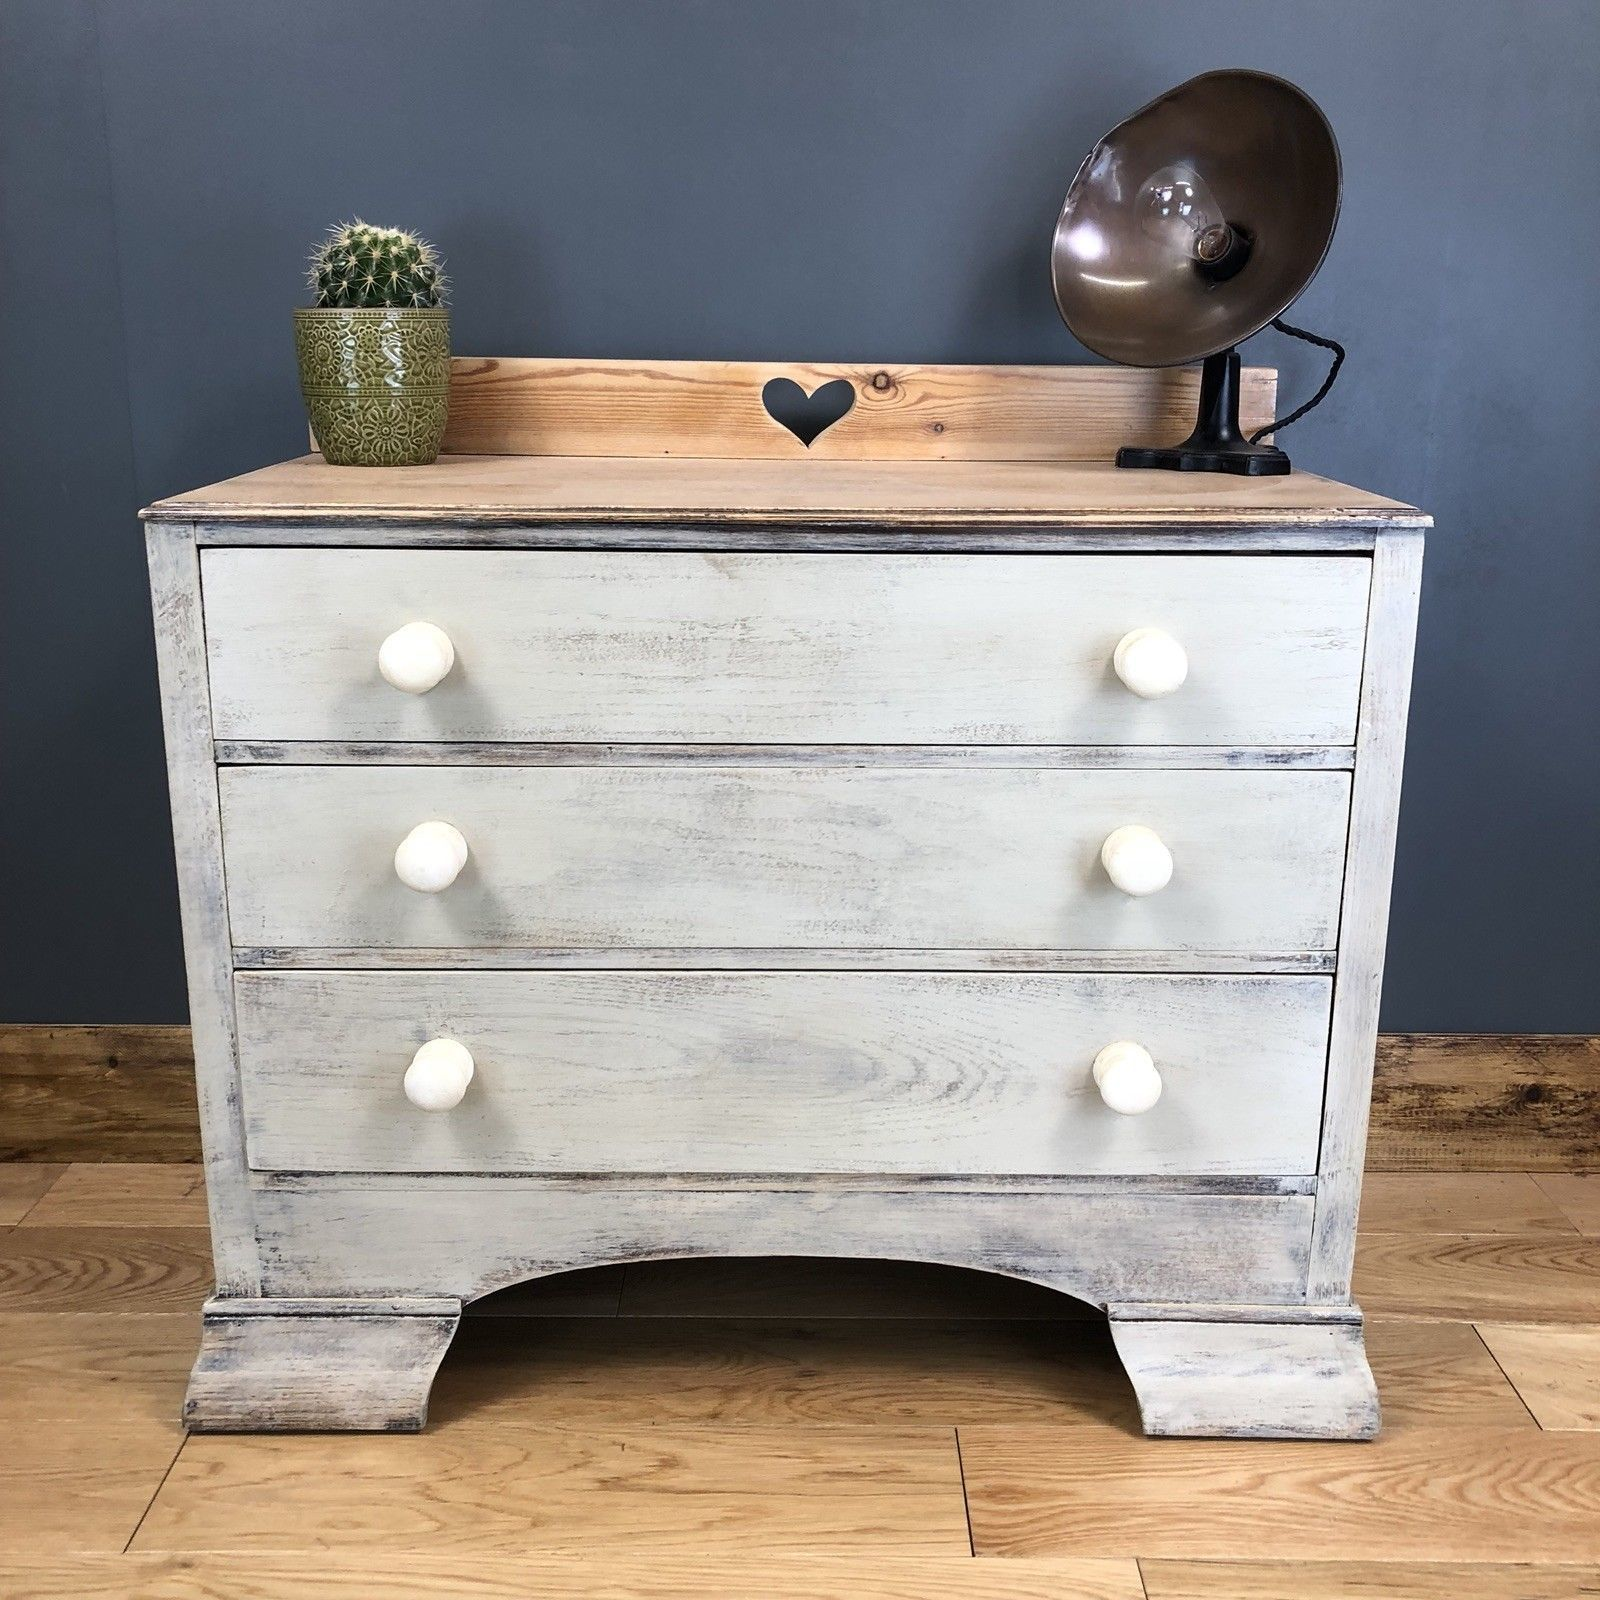 Shabby Chic Bedroom Drawers Room Rustic Vintage Painted Distressed Oak Pine Shabby Chic Vinterior Co